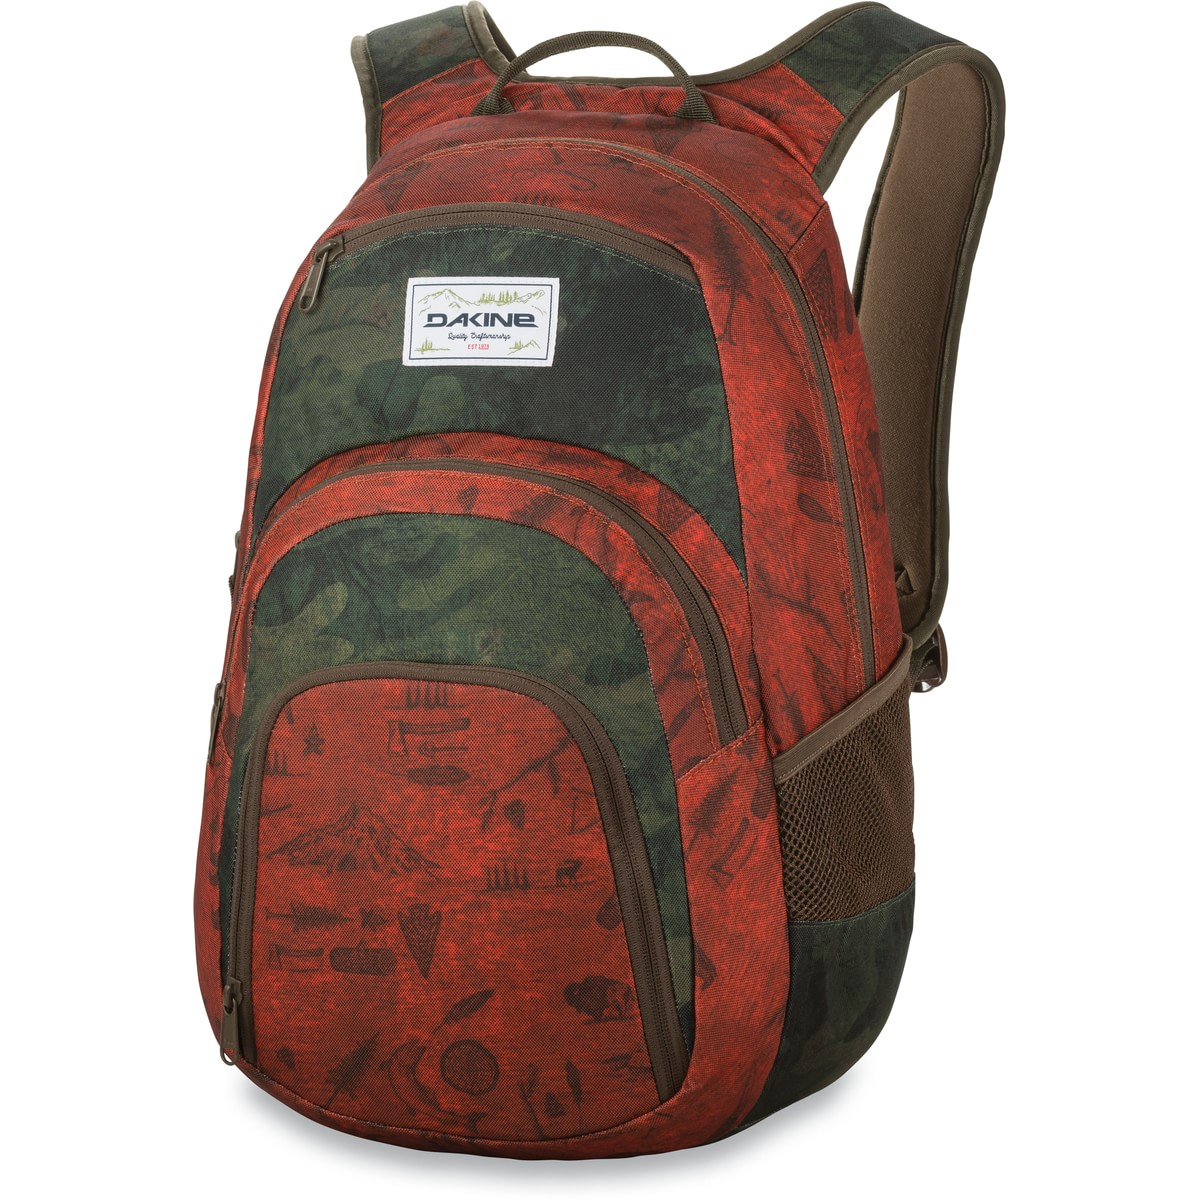 Dakine Campus Backpack | eBay